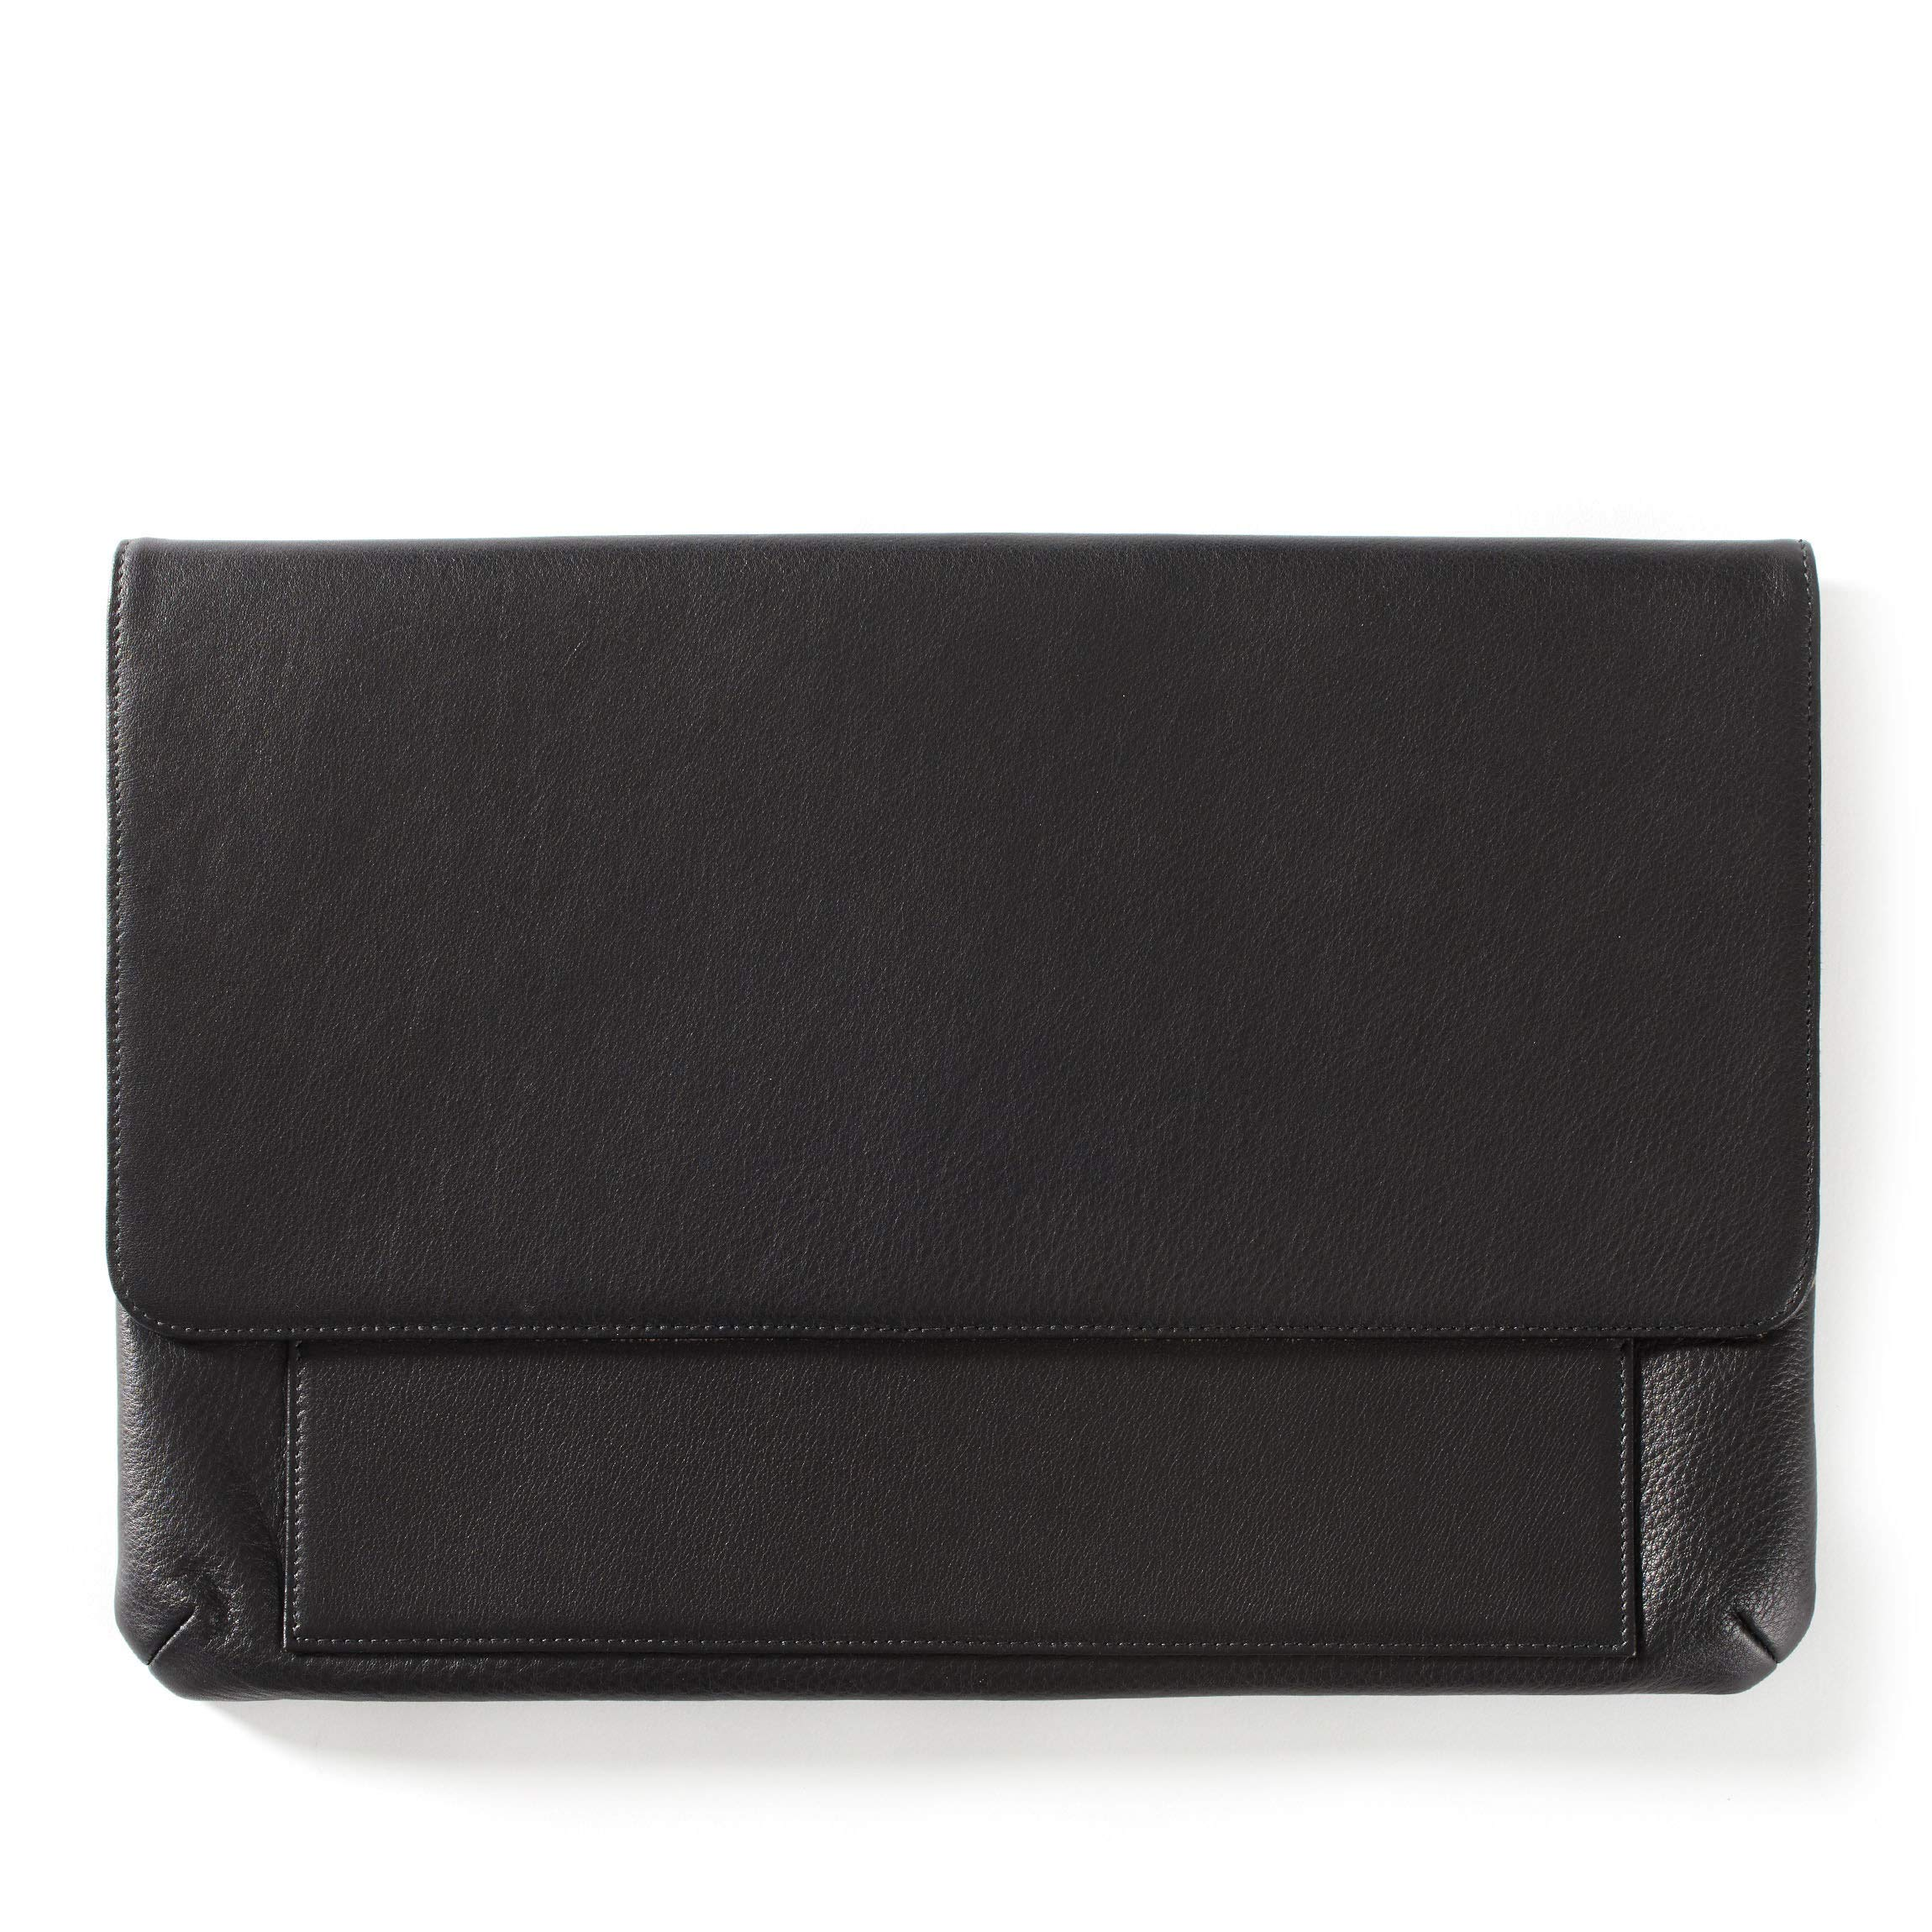 Laptop Clutch - Full Grain Leather - Black Onyx (black)